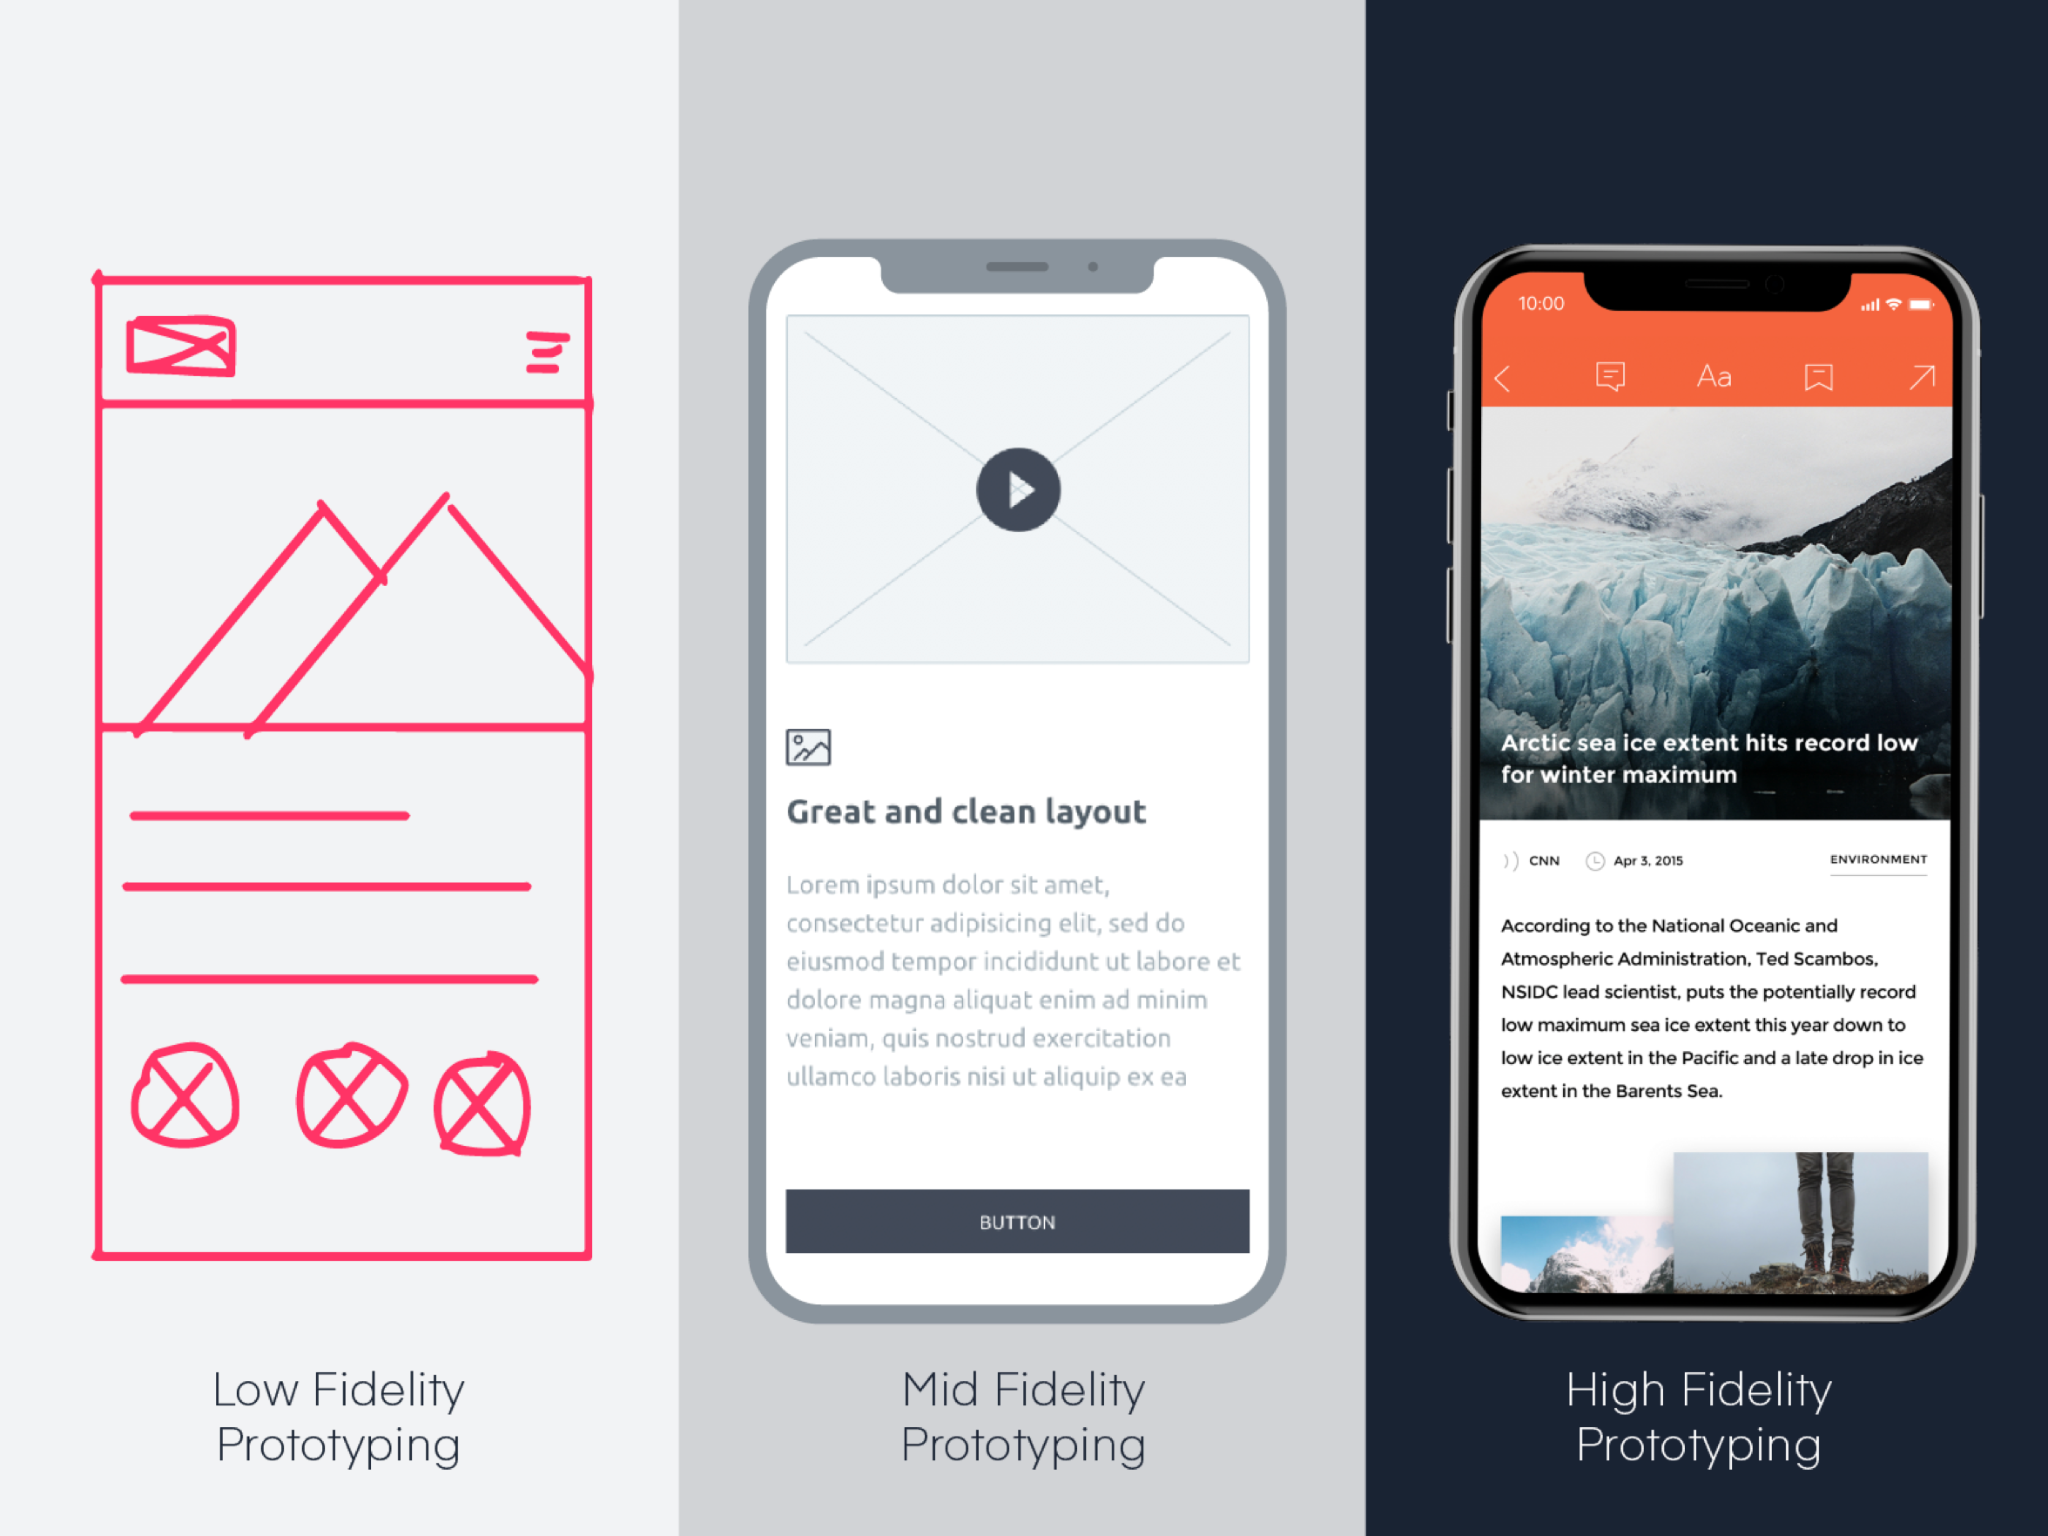 Examples of low, mid and high fidelity prototyping